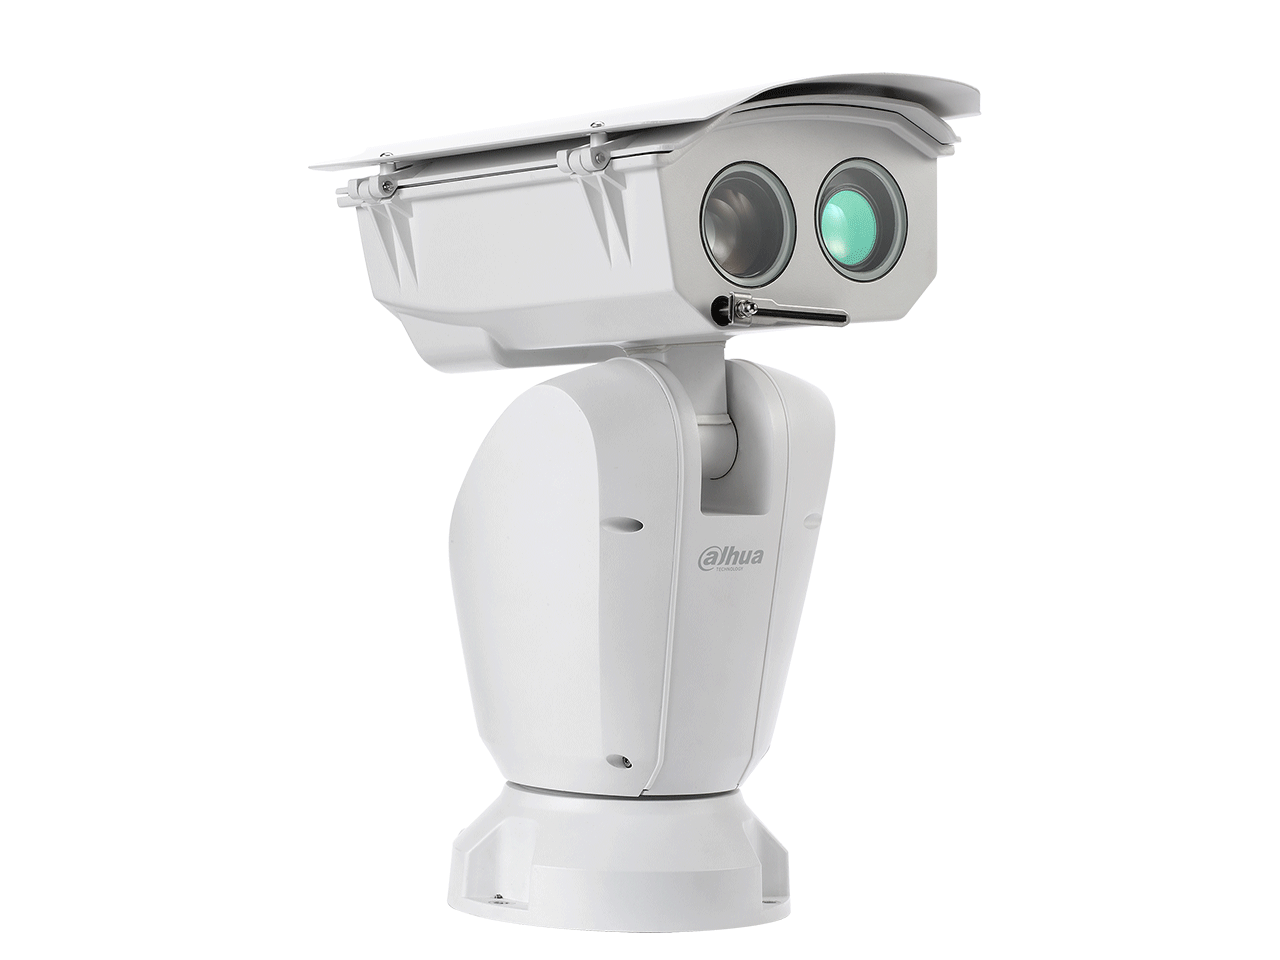 PTZ12230F-LR8-N 2MP FULL HD 30X OPTİK 800M LAZER IP PTZ KAMERA - STARLİGHT